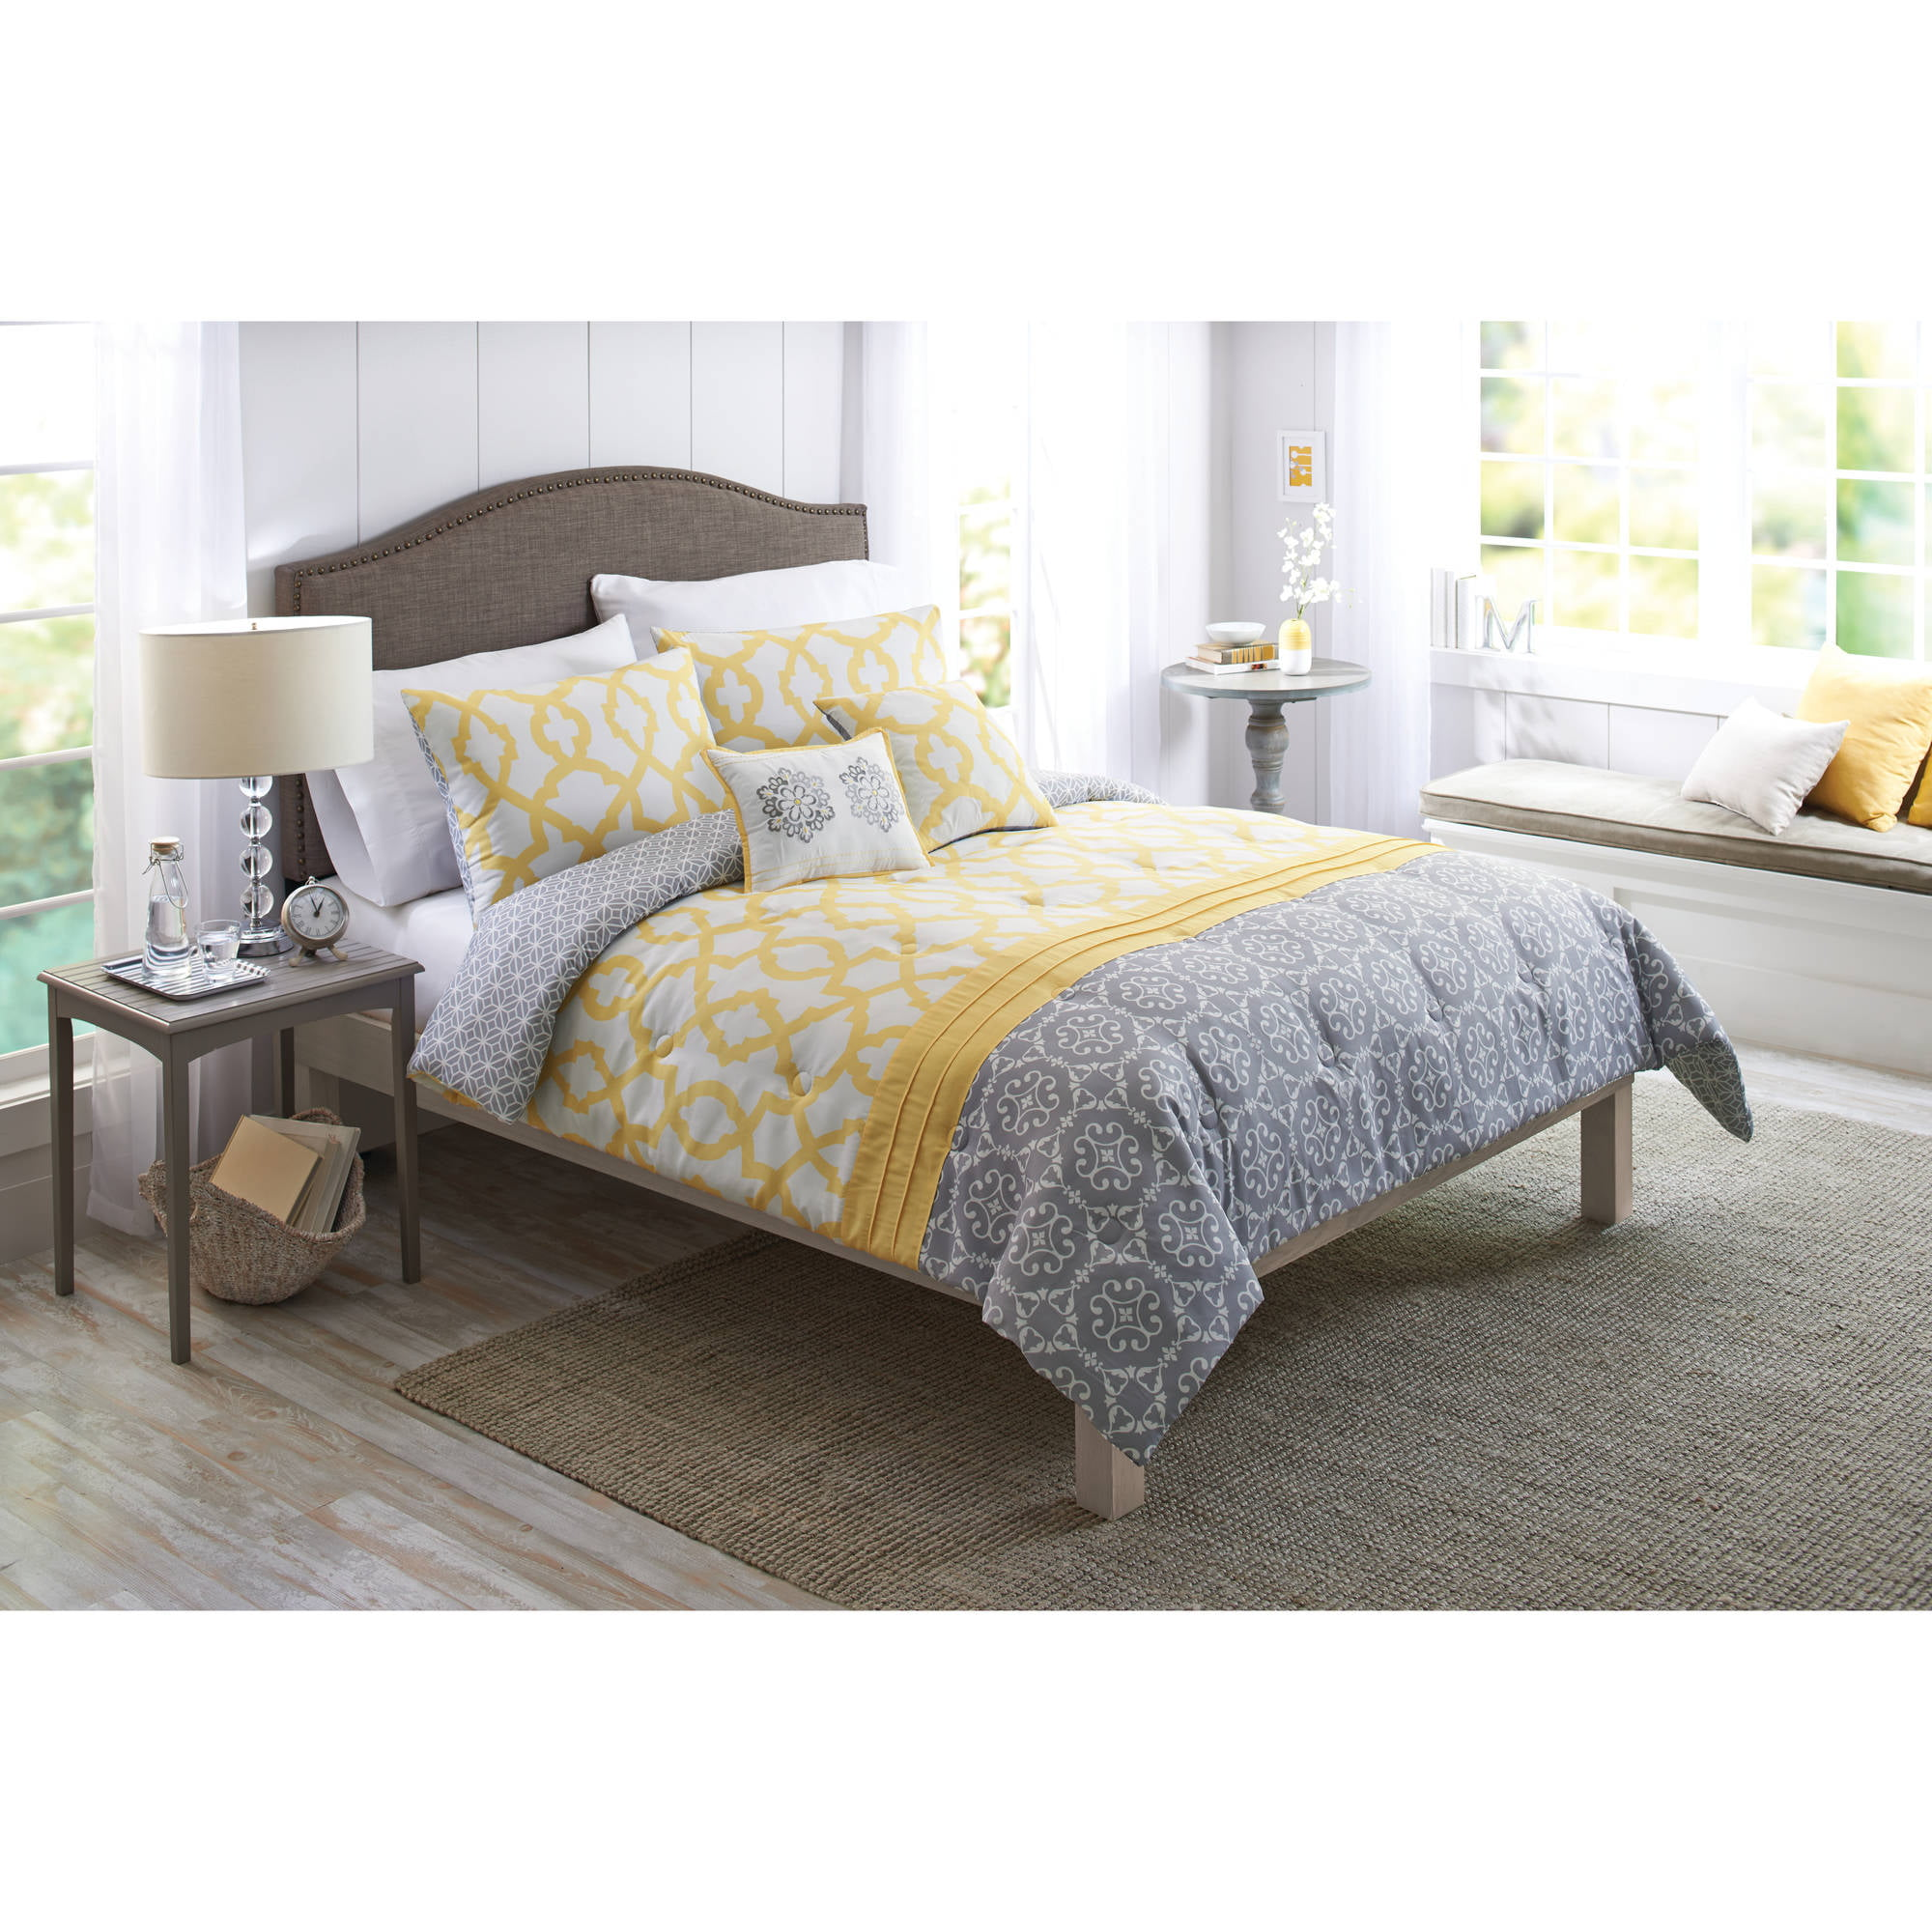 Better Homes and Gardens Yellow and Gray Medallion 5 Piece Bedding